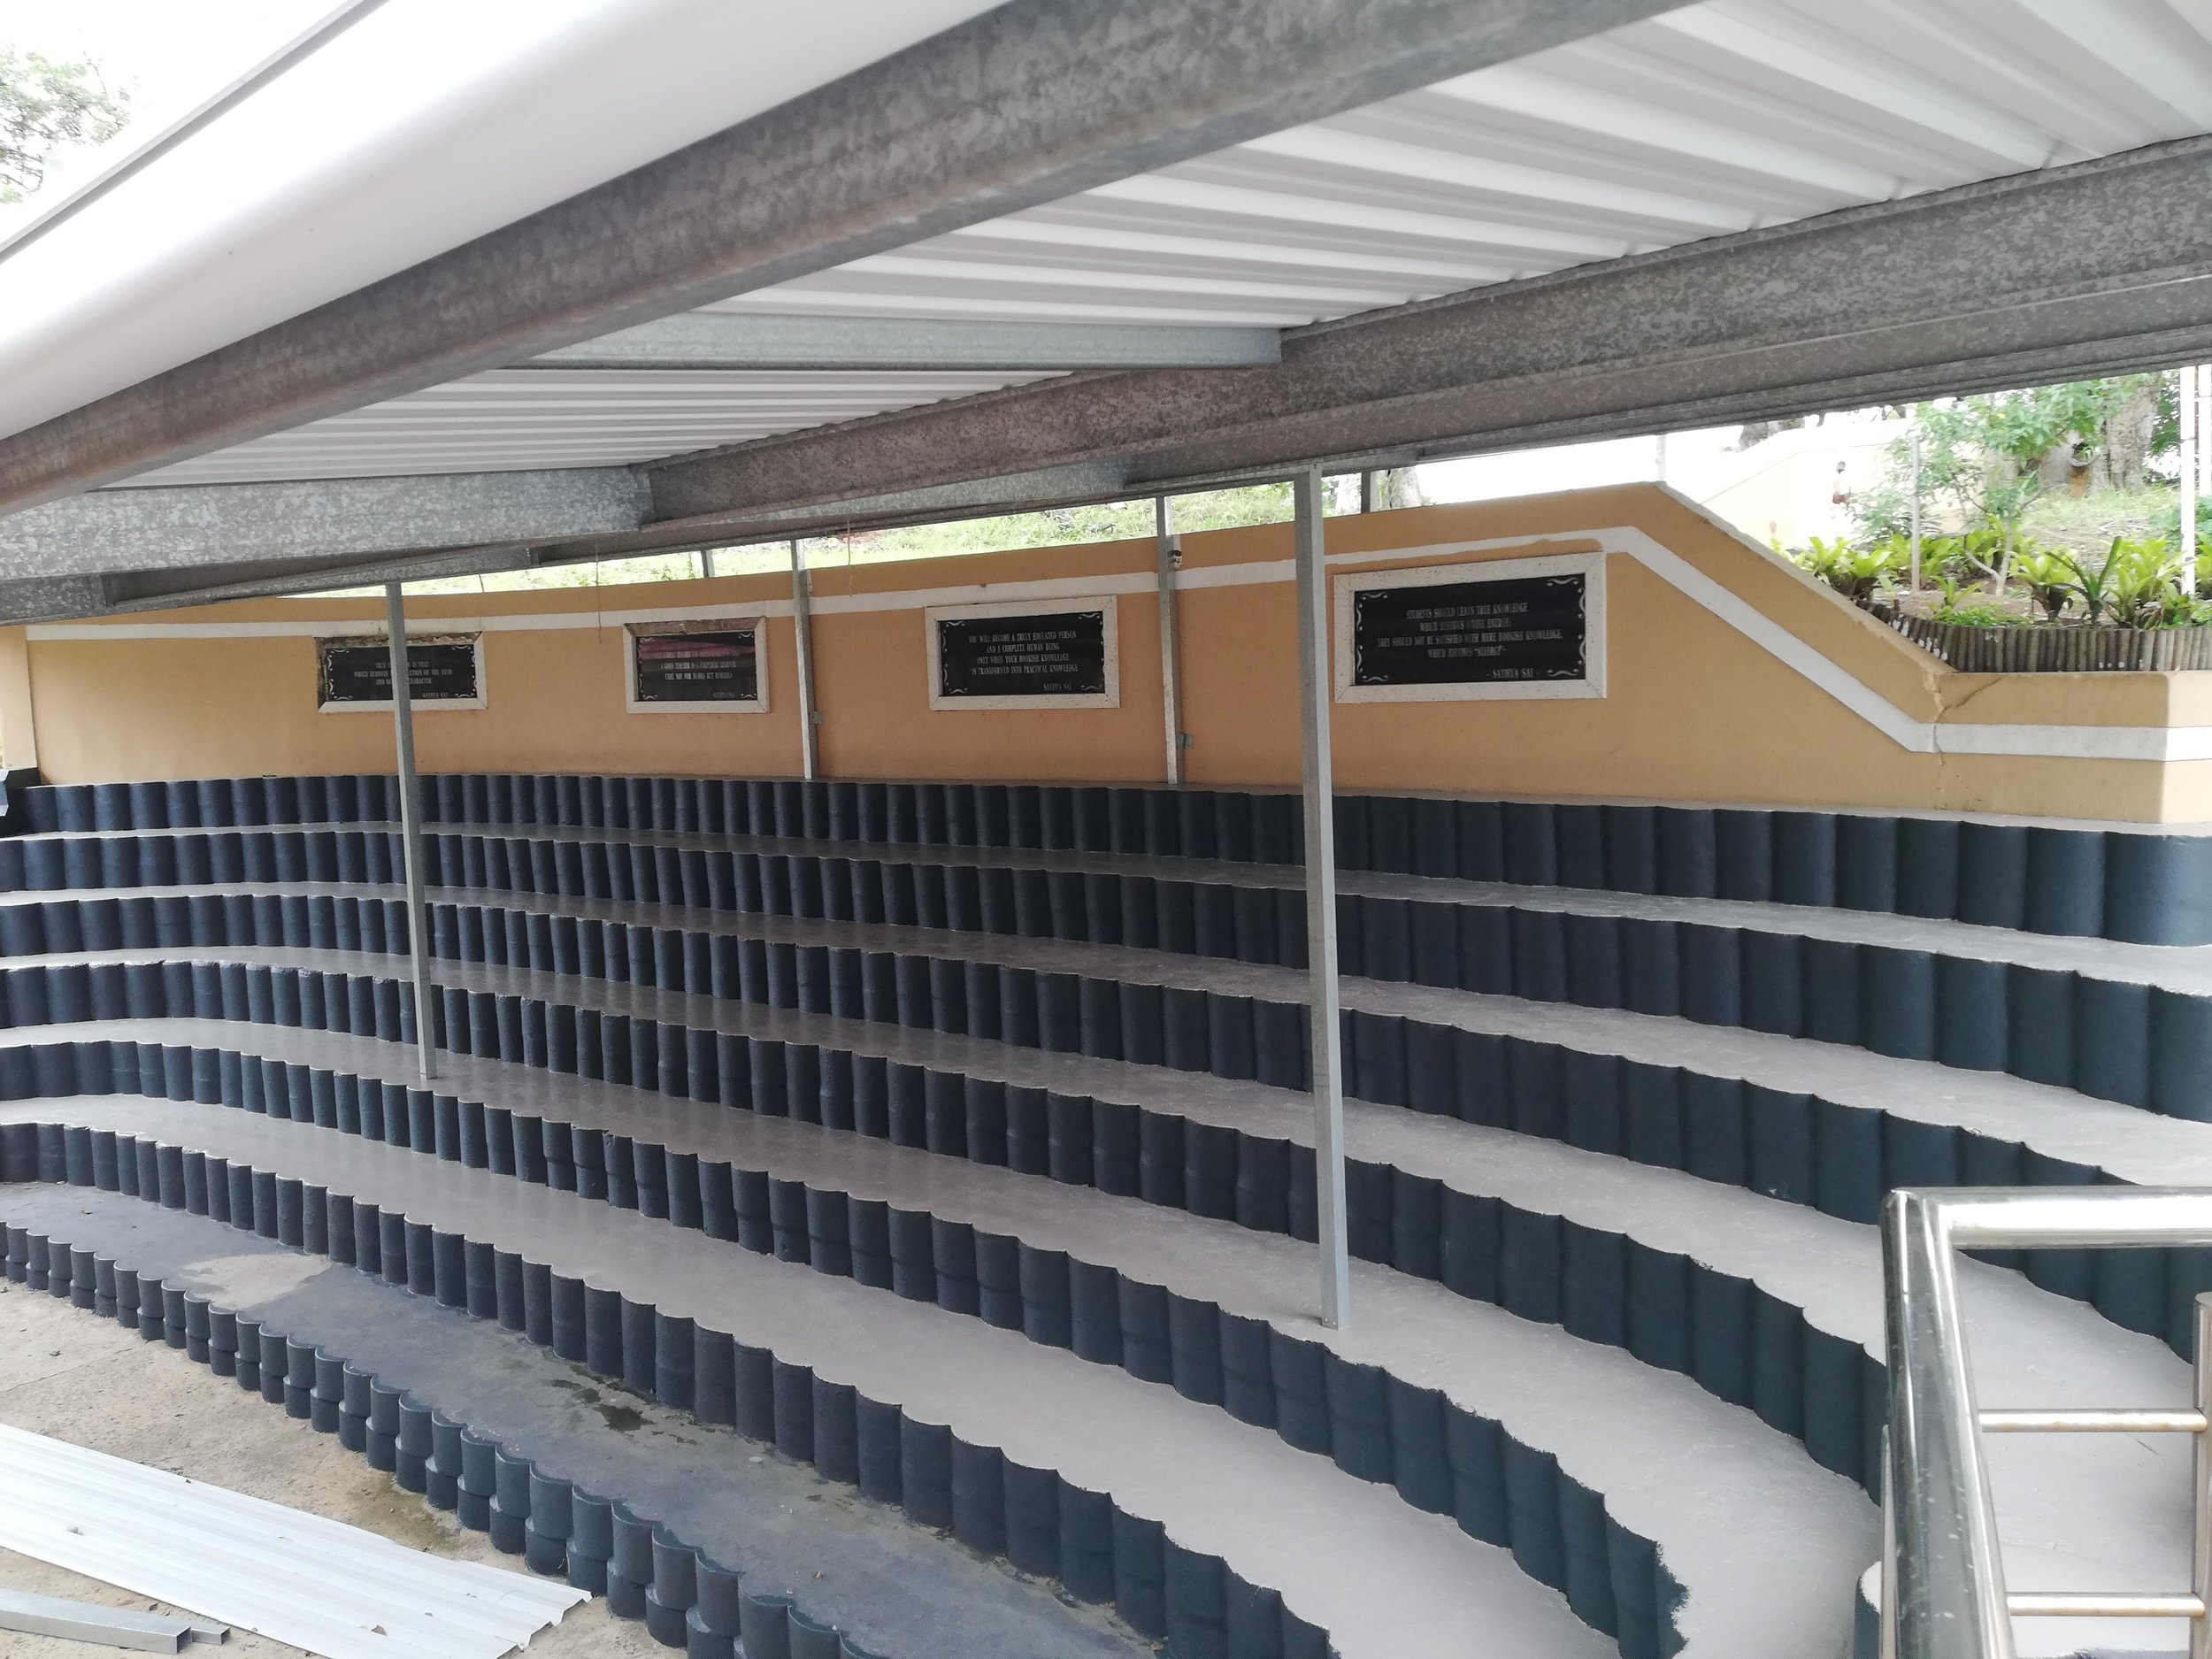 Amphitheatre Surface refurbished and painted